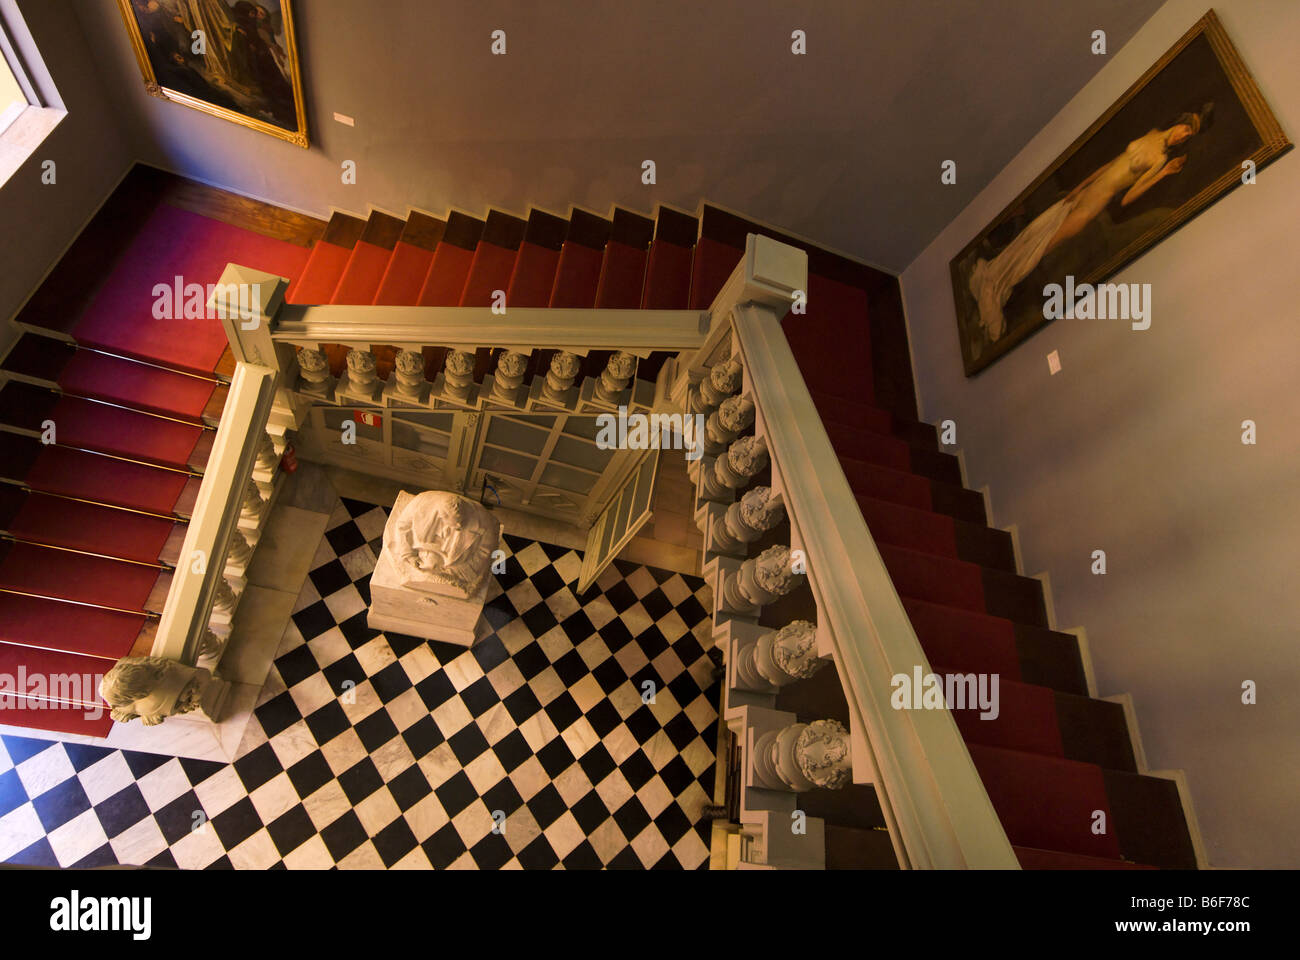 Stairway inside the City Museum of Valencia building Spain Museo de la Ciudad - Stock Image